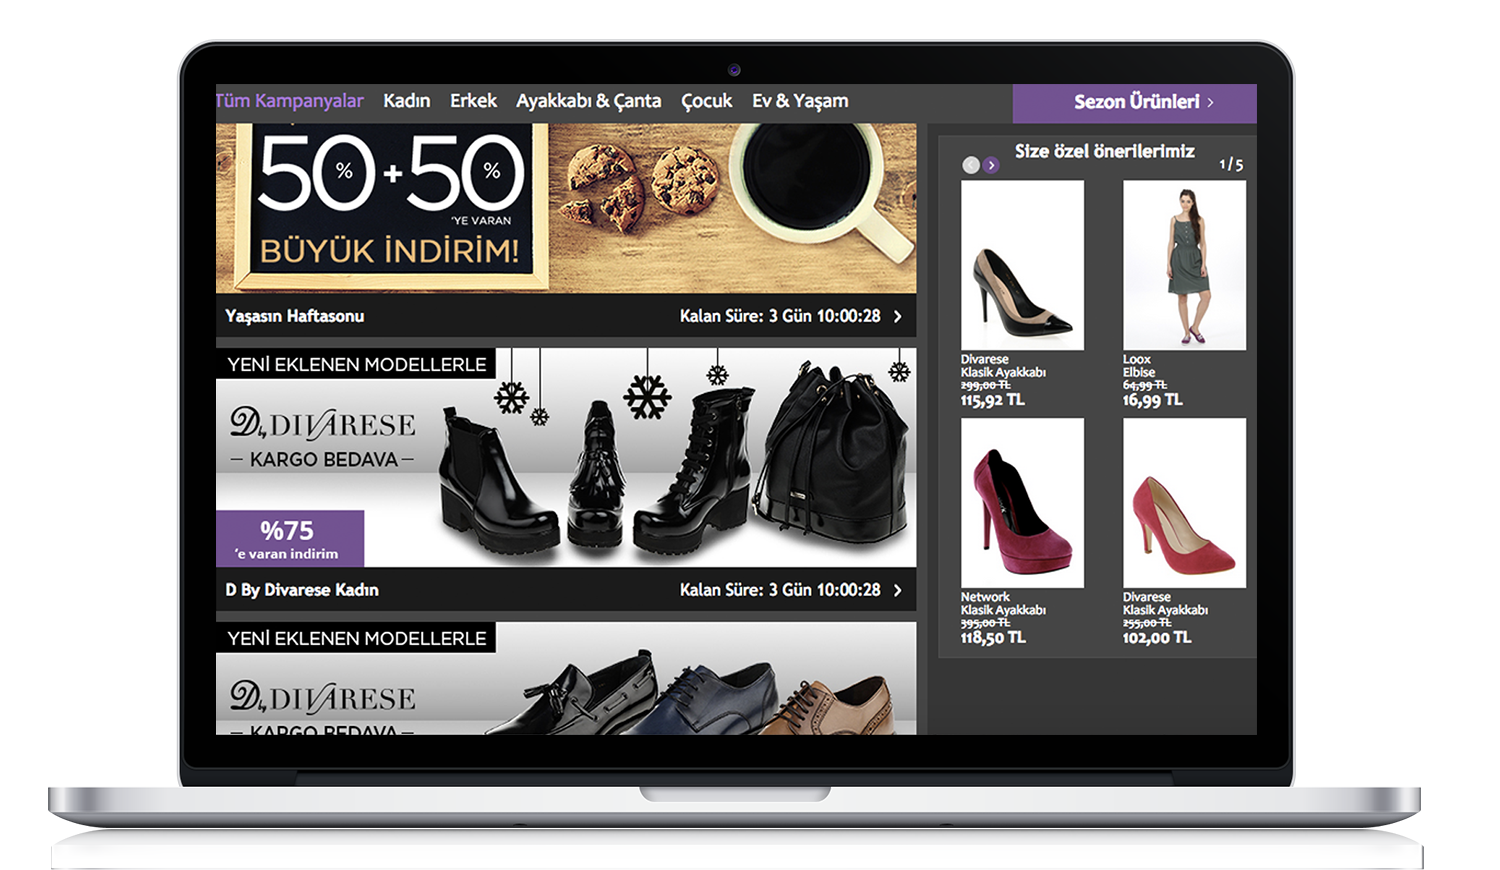 predictive personalization in real time - Perzonalization homepage recommendation